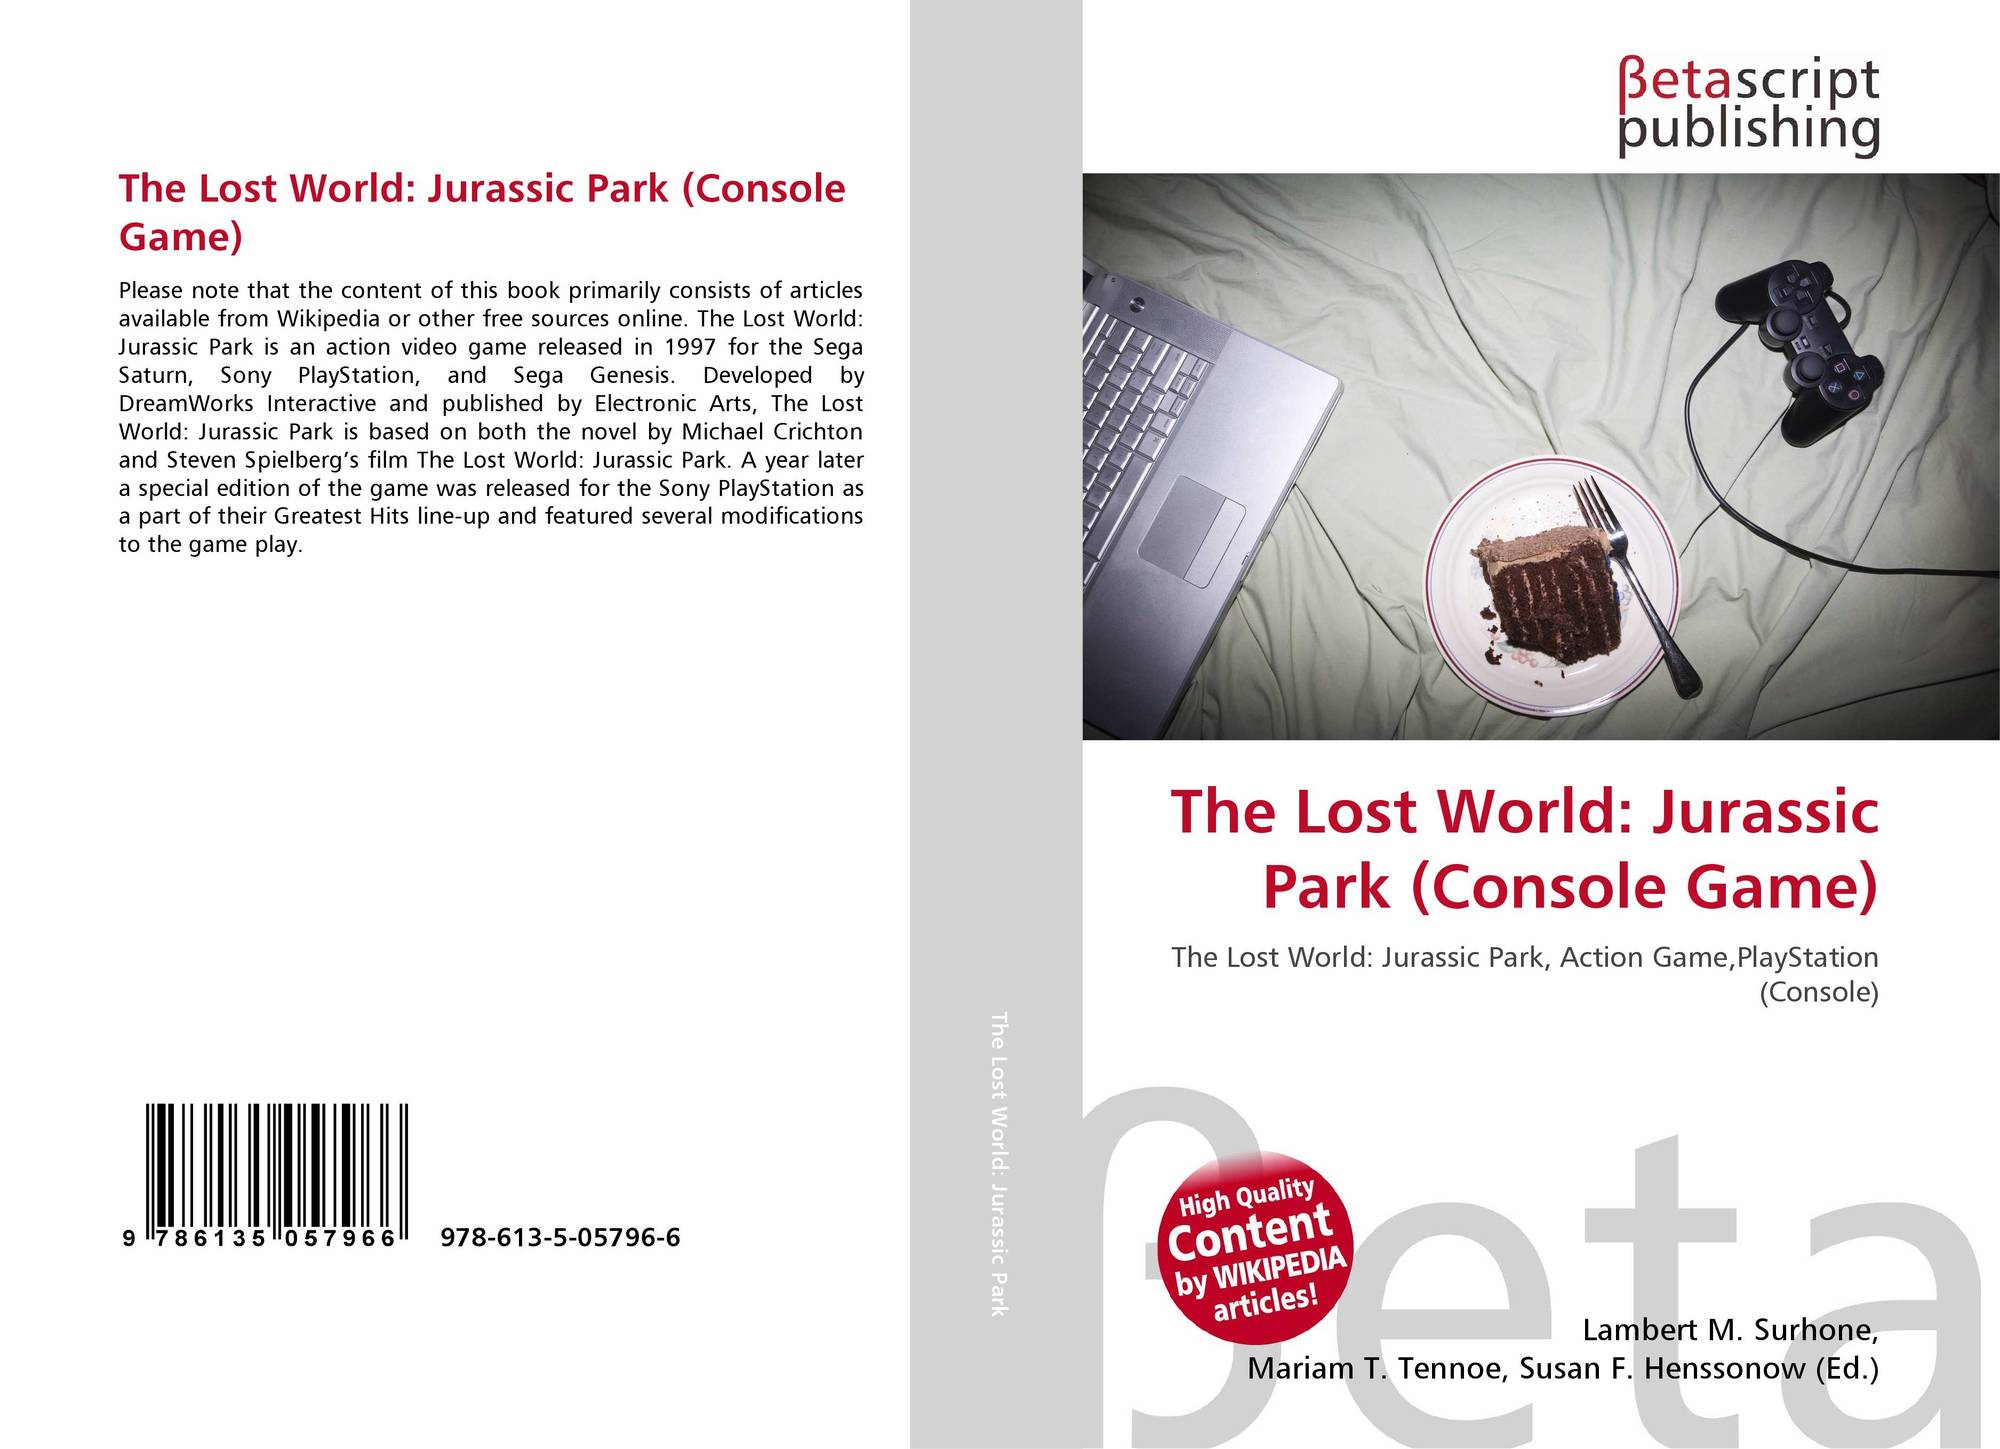 The Lost World: Jurassic Park (Console Game), 978-613-5